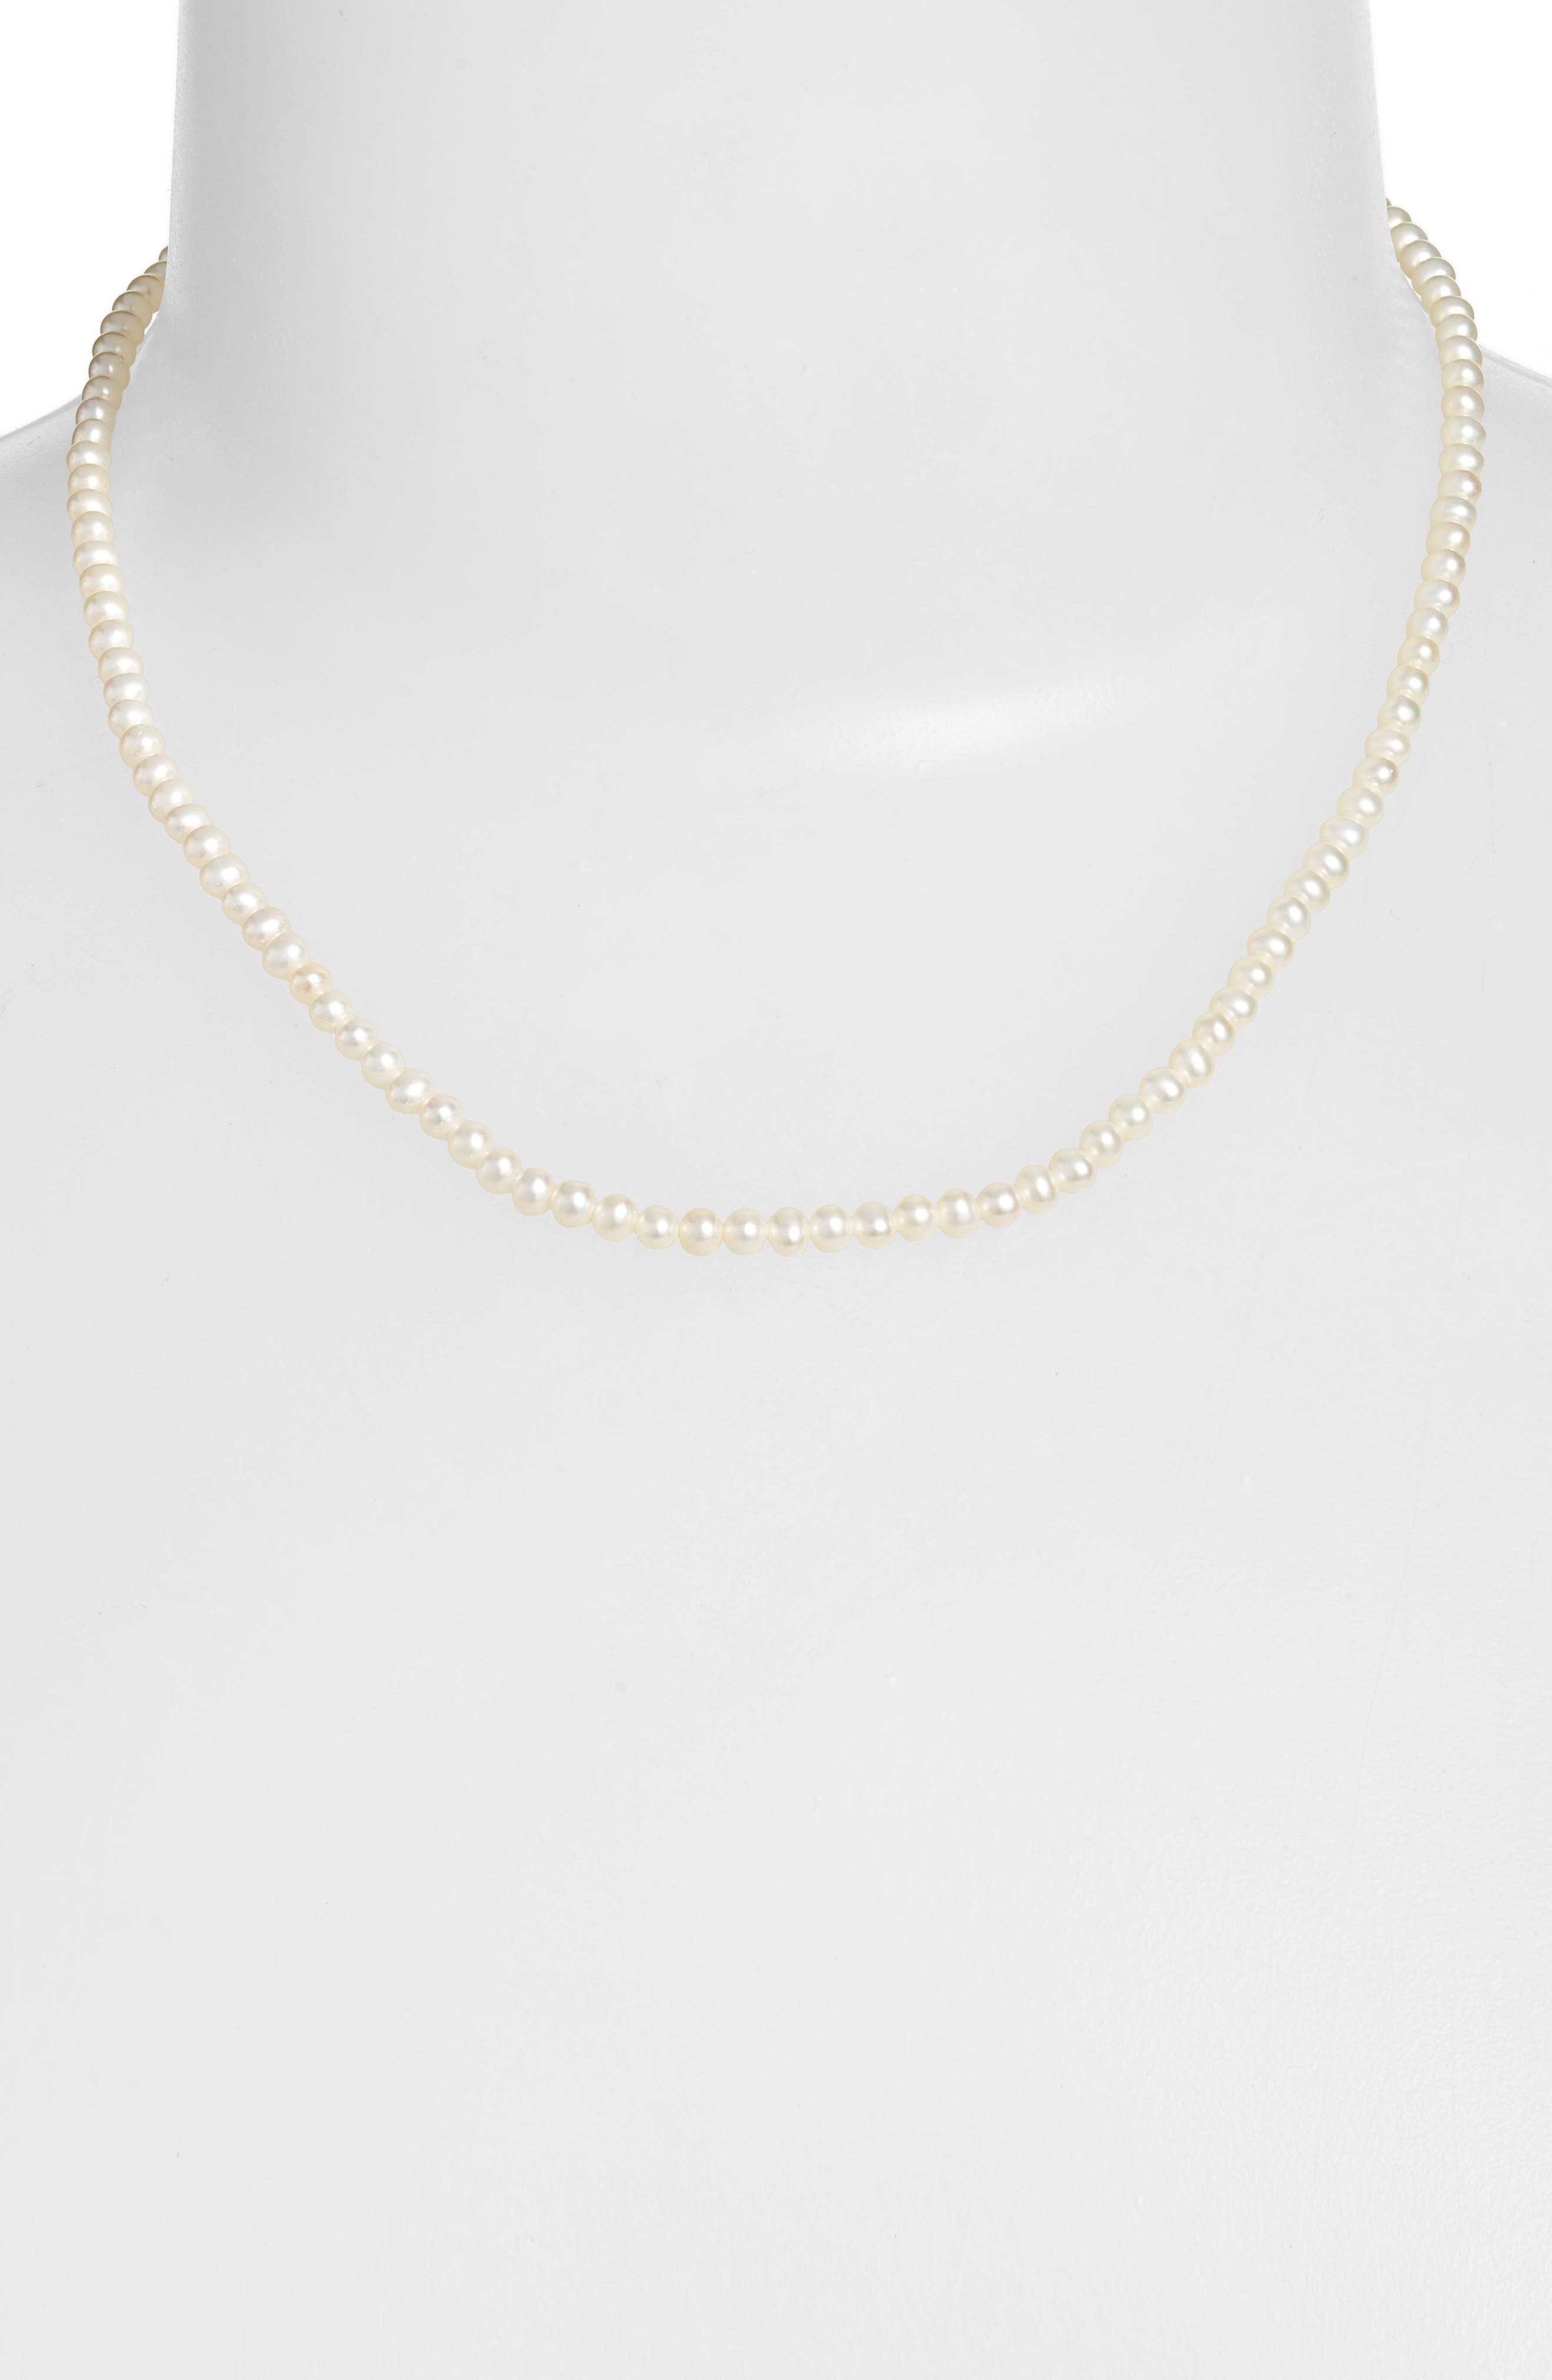 Main Image - Poppy Finch Pearl Short Strand Necklace